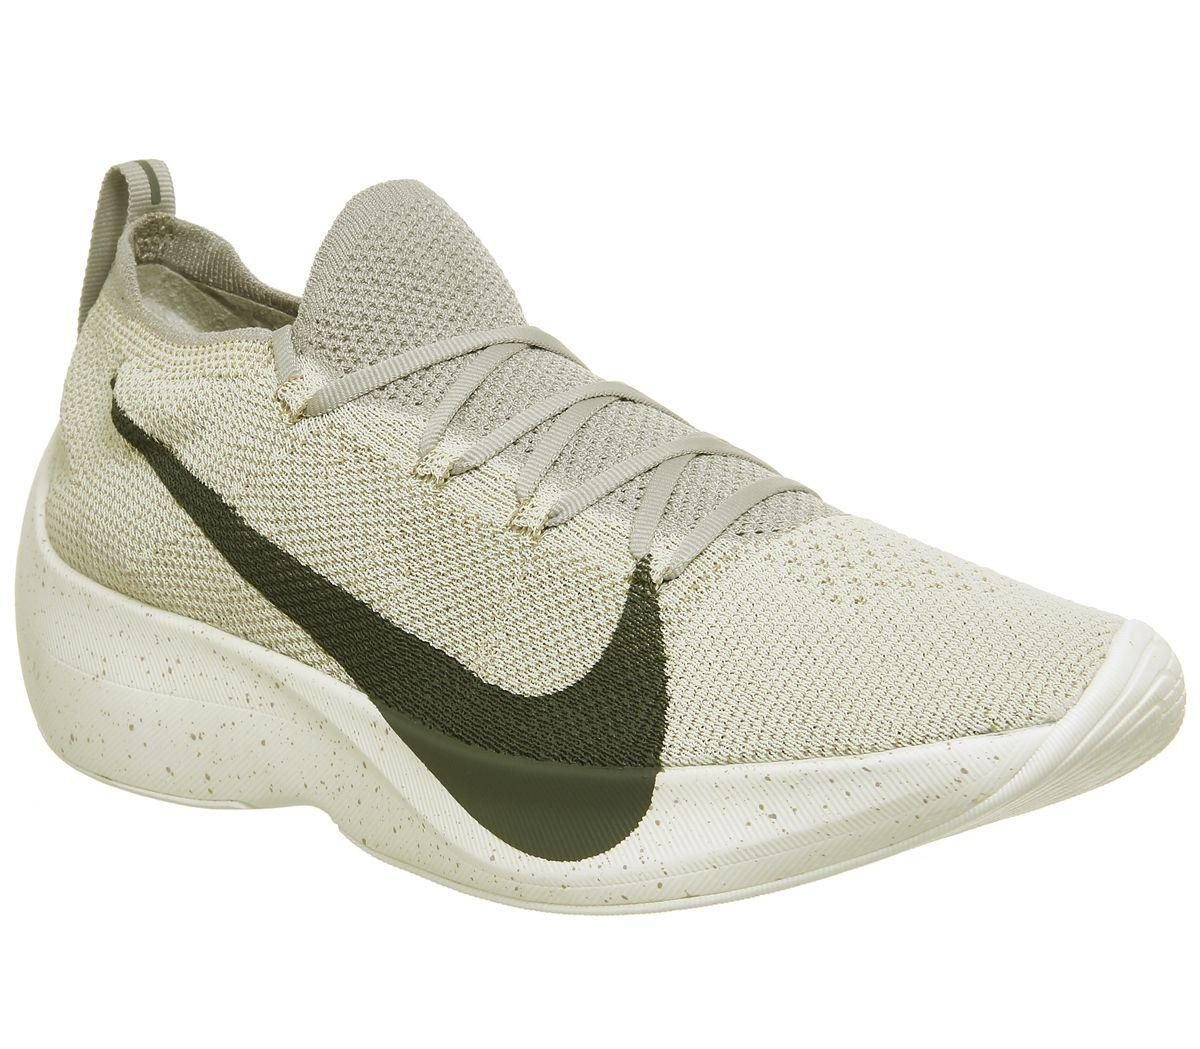 bb3888d022e1f Lyst - Nike React Vaporfly Elite Trainers in Green for Men